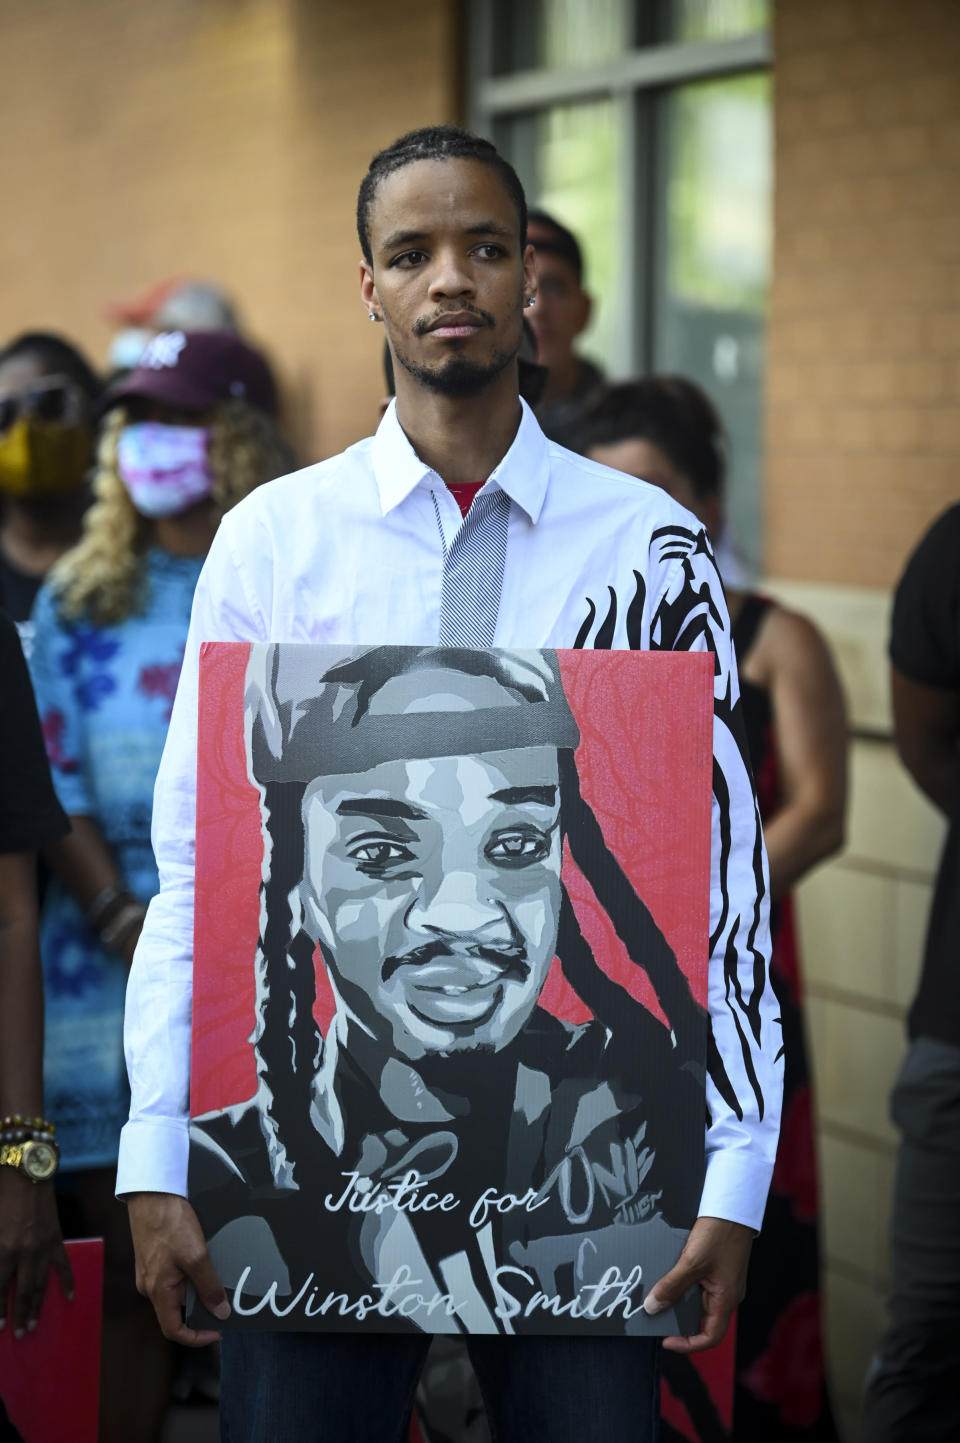 """Kidale Smith, brother of Winston Smith, holds a """"Justice for Winston Smith"""" poster during a press conference Thursday, June 10, 2021 in Minneapolis. Attorneys for the woman in a vehicle when members of a federal U.S. Marshals Service task force fatally shot the driver last week said their client never saw a gun on the man or in the vehicle. (Aaron Lavinsky/Star Tribune via AP)"""